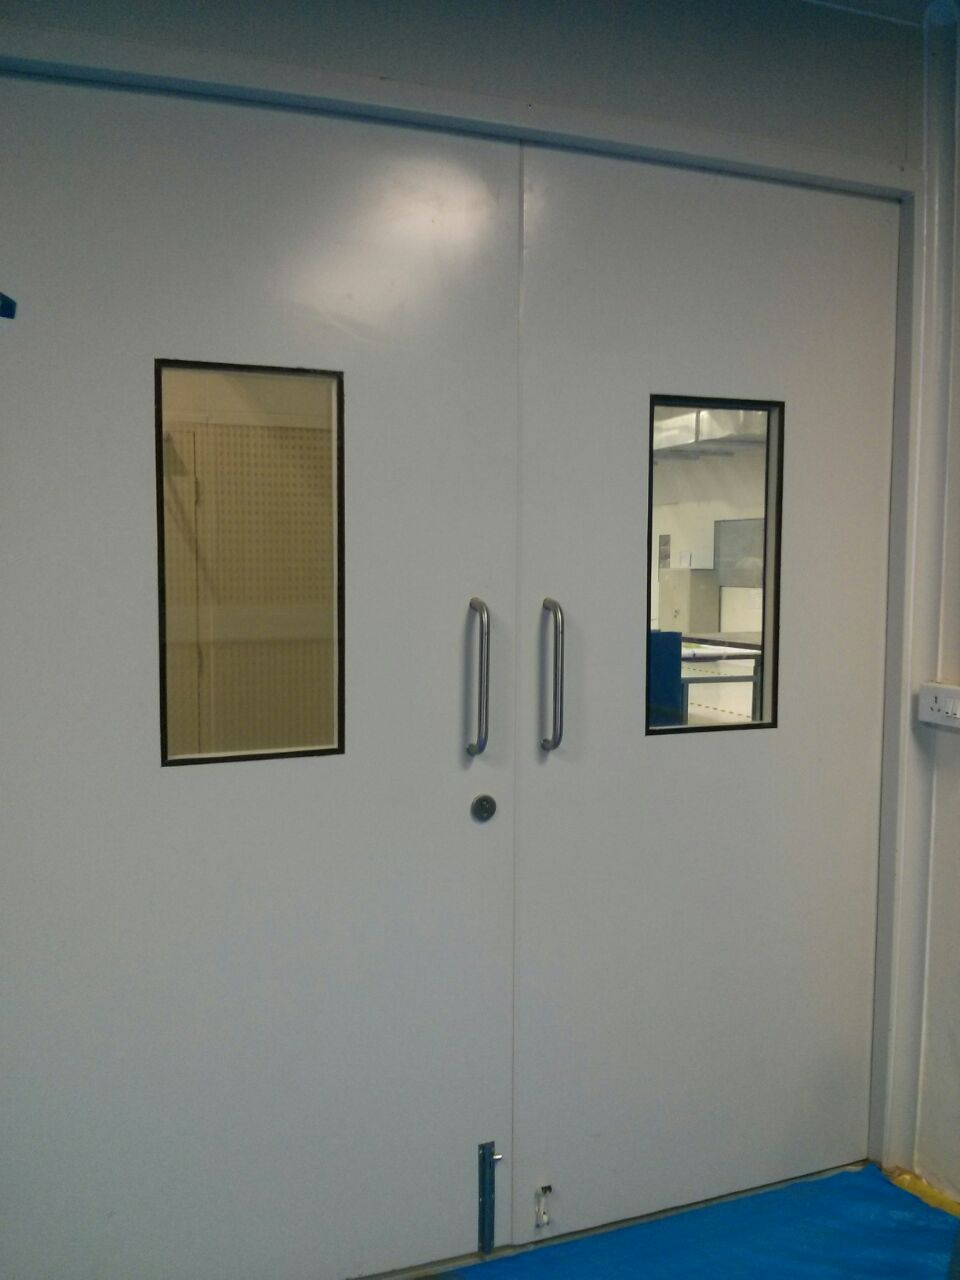 Puf insulated door Supplier in chennai: We are the leading supplier of Puf insulated doors and fire resistant doors. available in various sizes with view glass. cost also reasonable. It is durable and Strong.